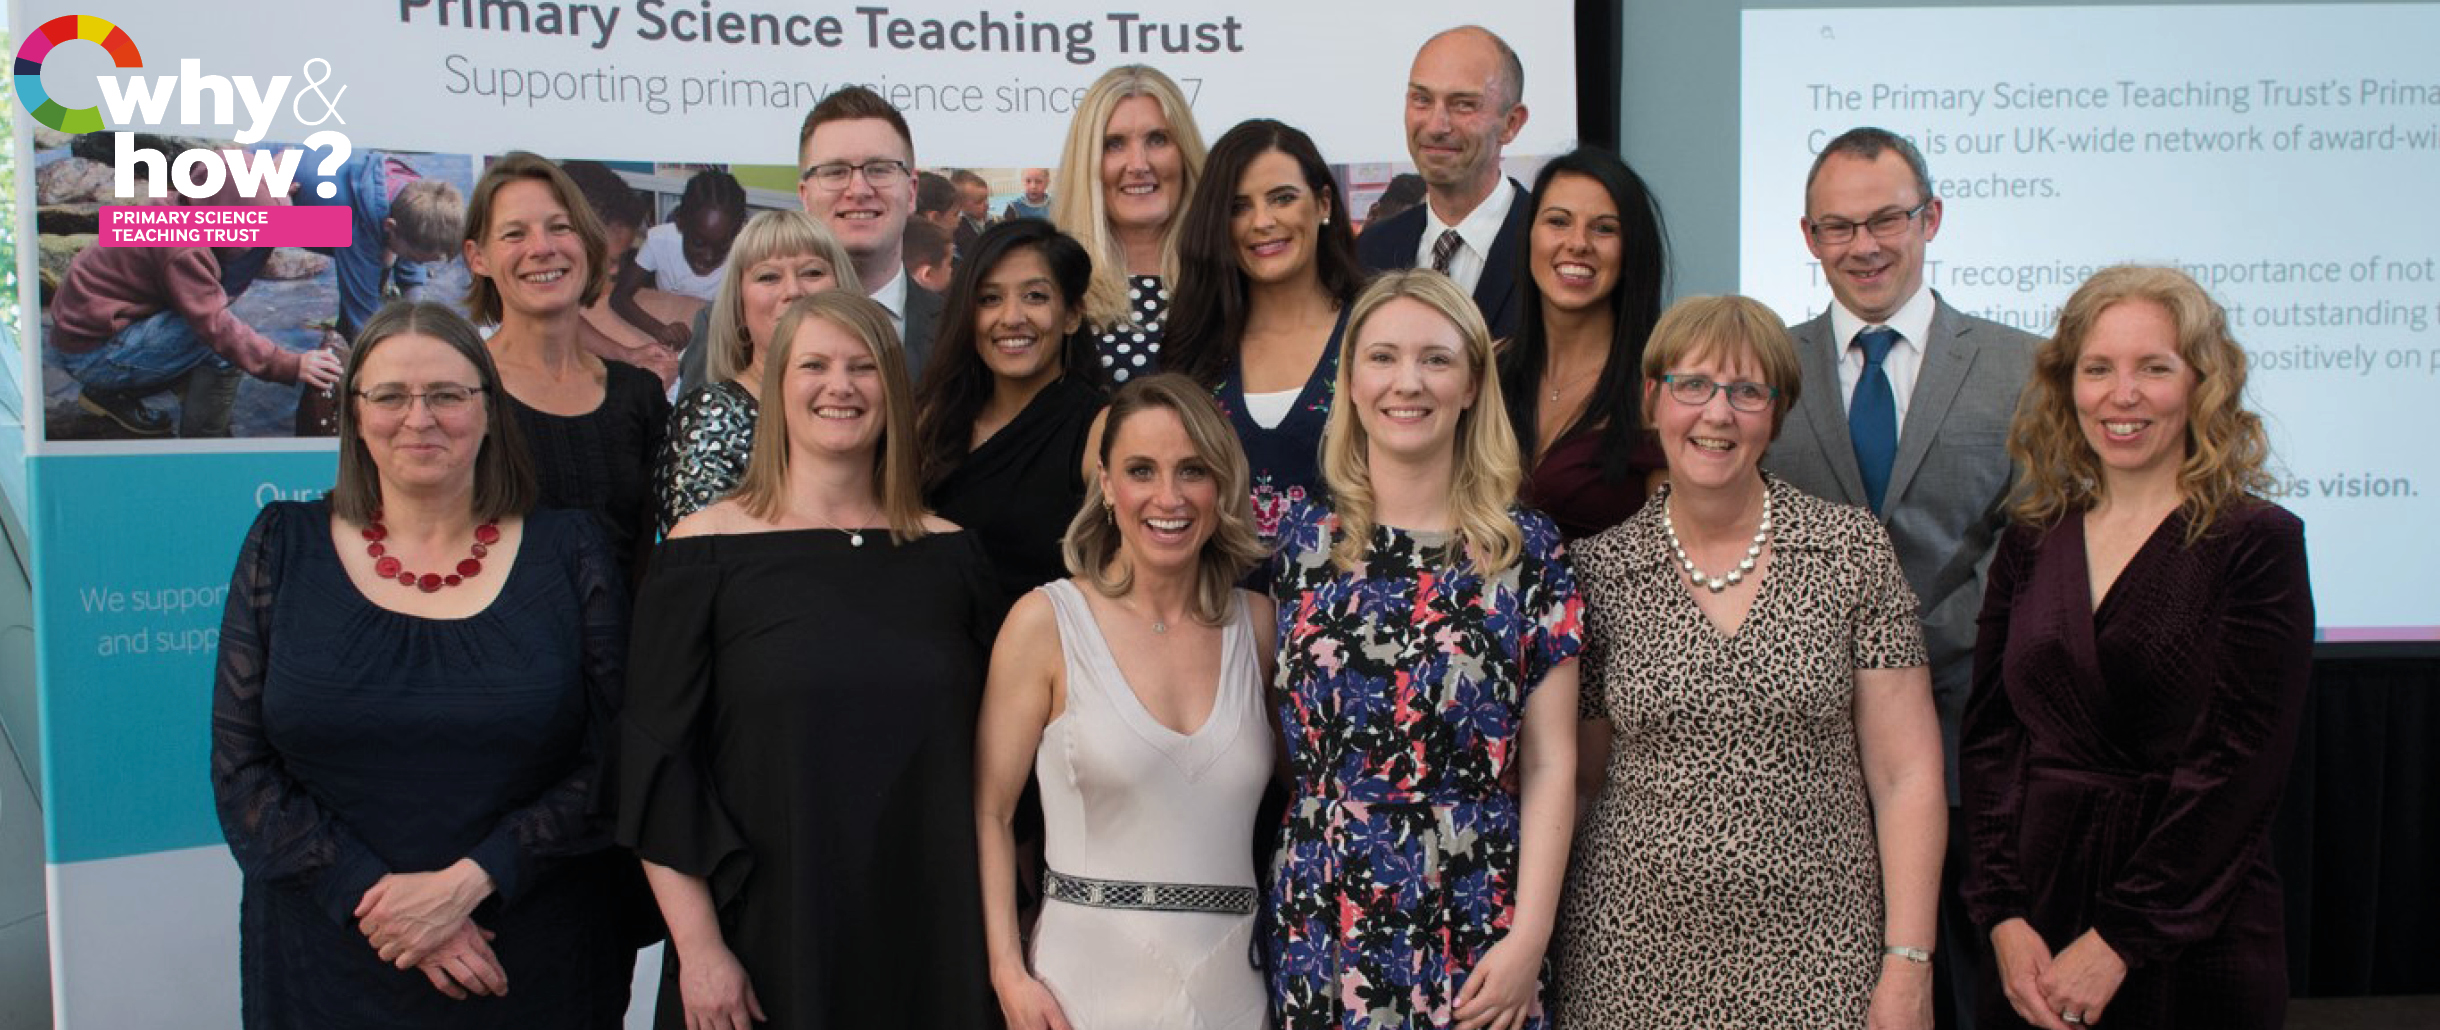 Do you know an outstanding primary science teacher?